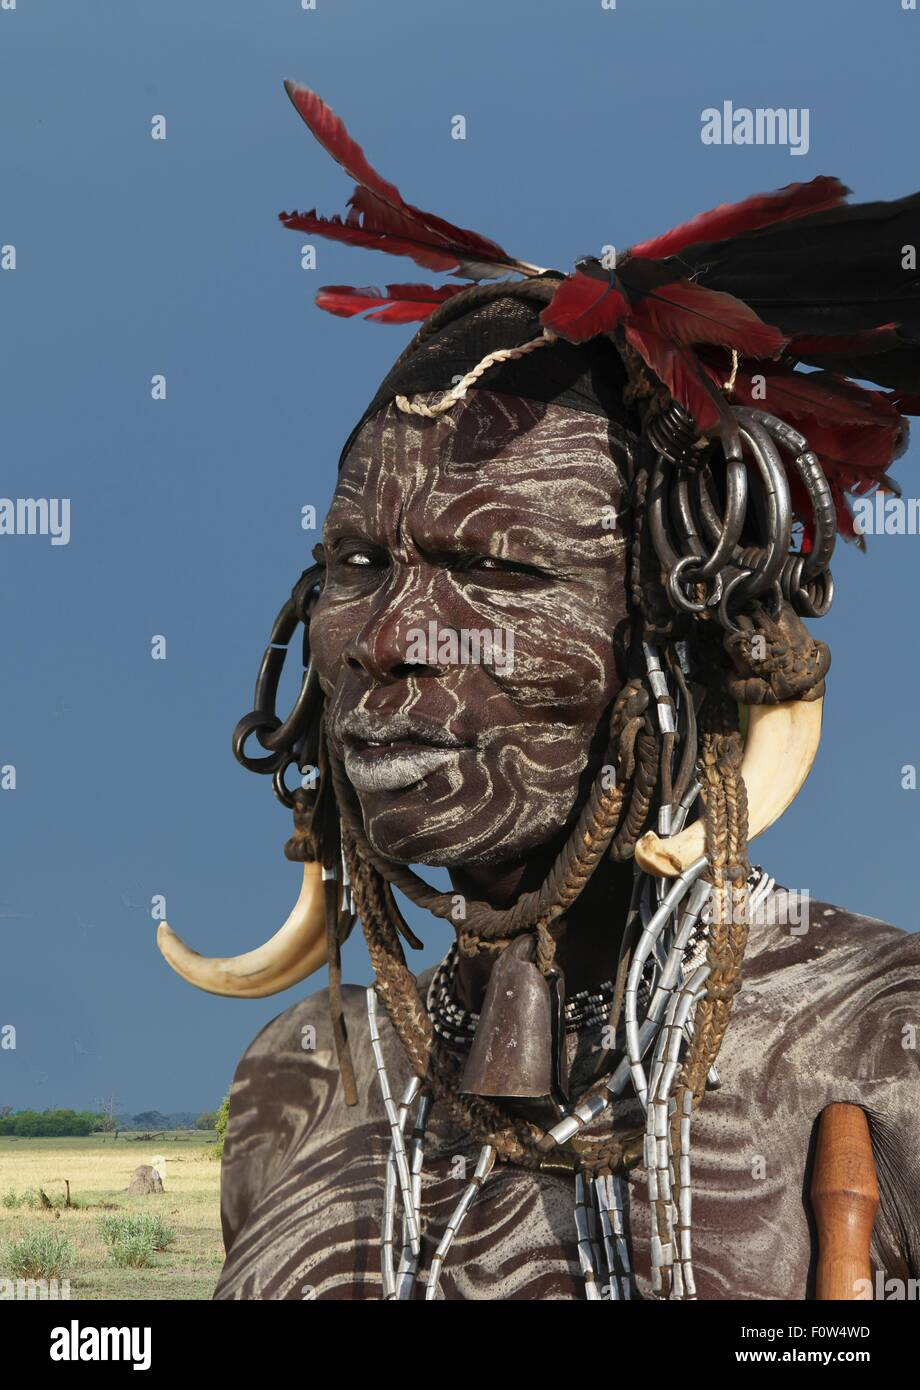 Portrait of man from Mursi tribe decorated with face paint, Ethiopia, Africa - Stock Image